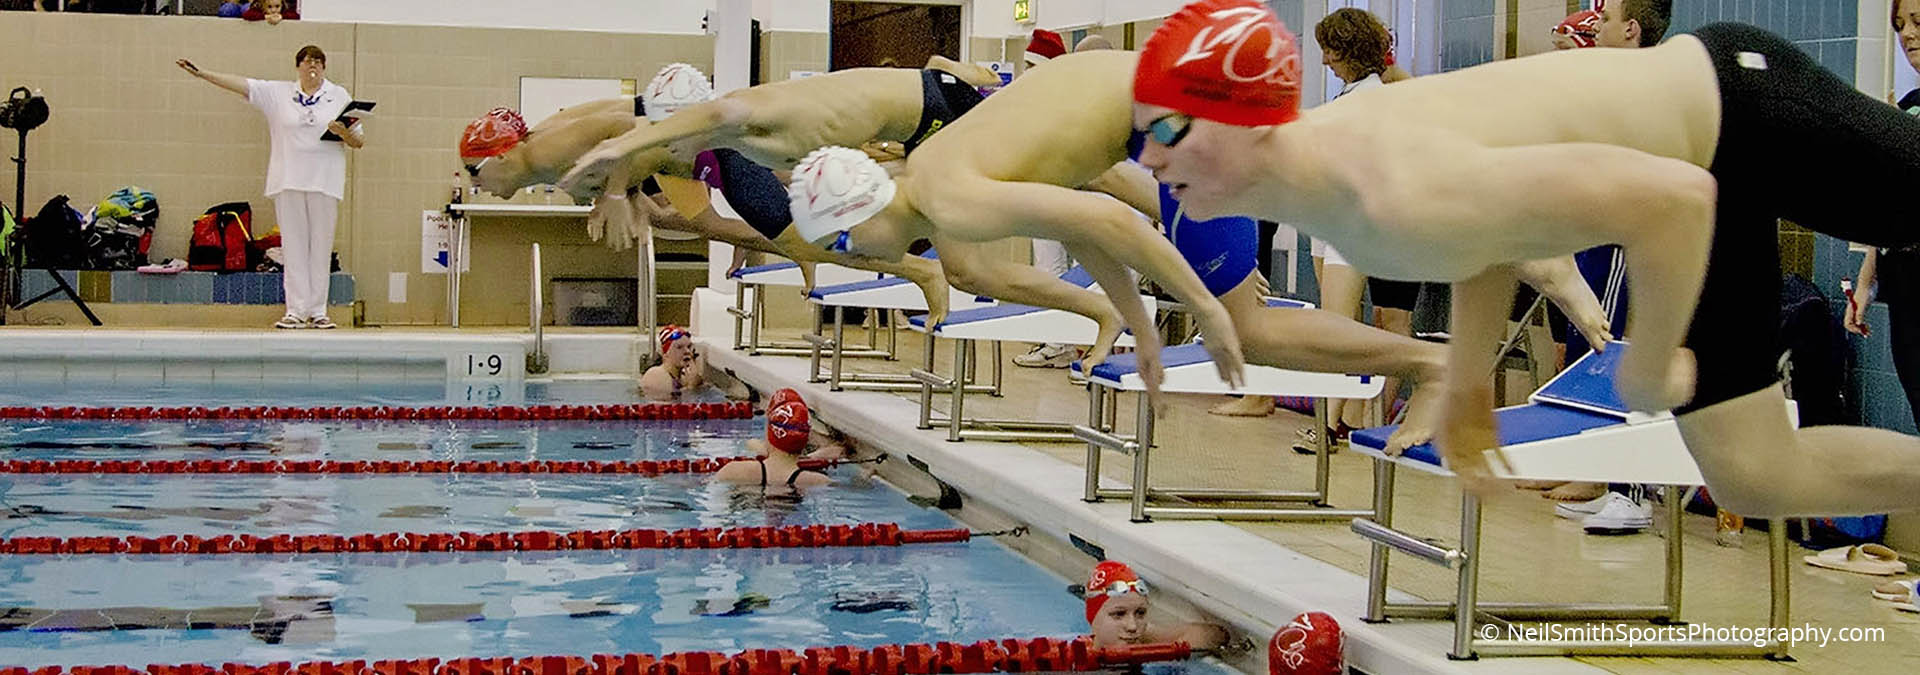 Swimmers diving in for a race